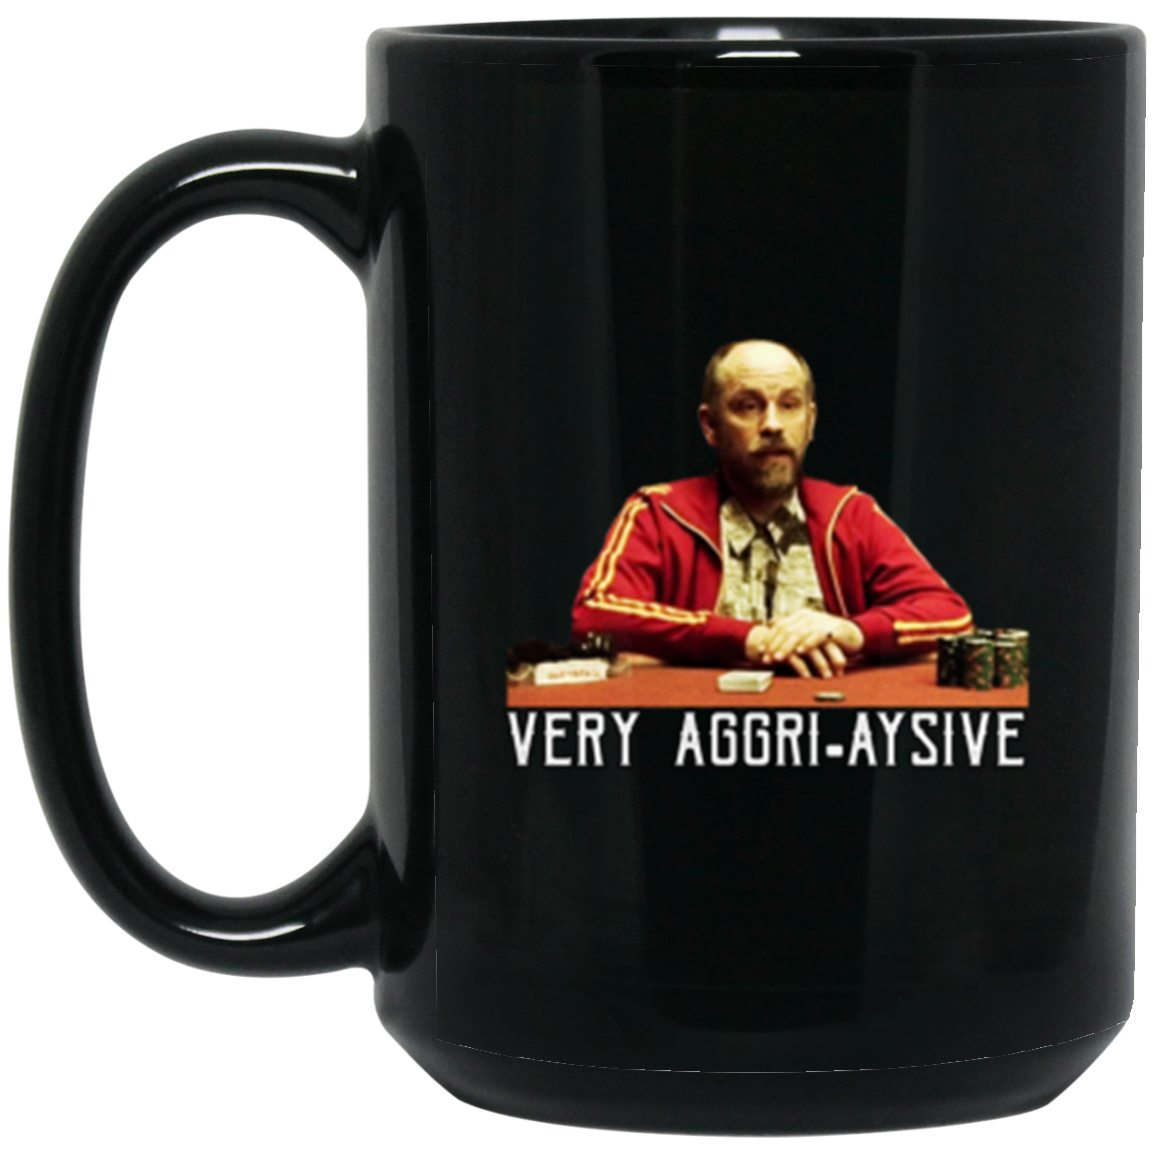 Drinkware - KGB Aggri-aysive Black Mug 15oz (2-sided)